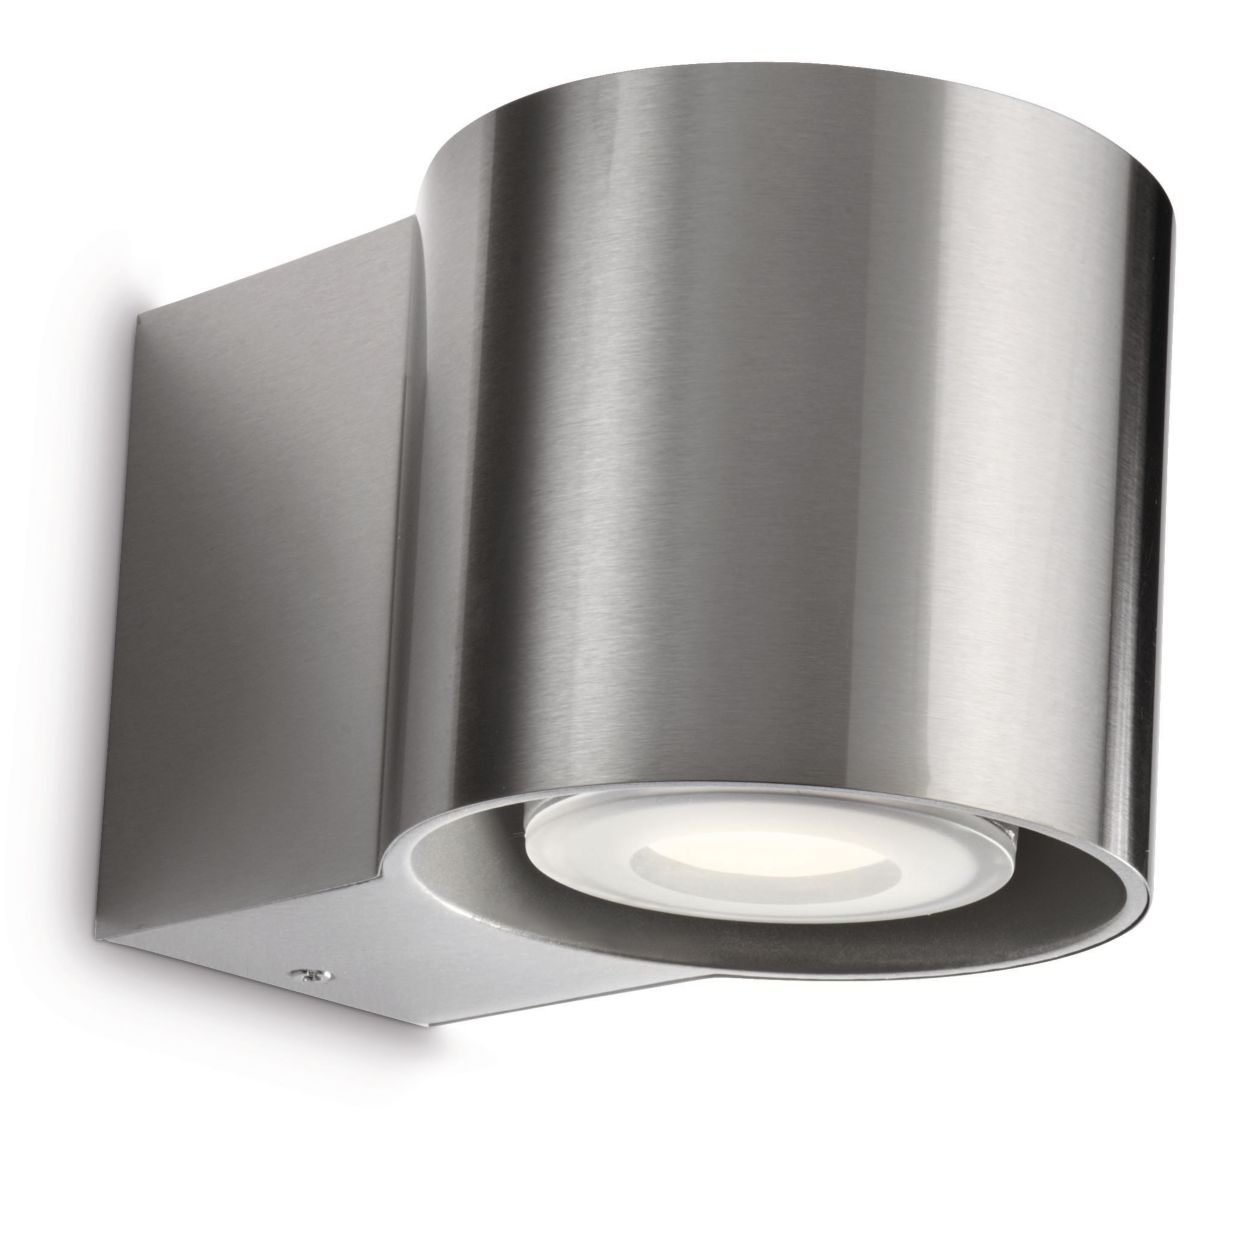 Philips Grace Wall Lights : Wall light 163184716 Philips